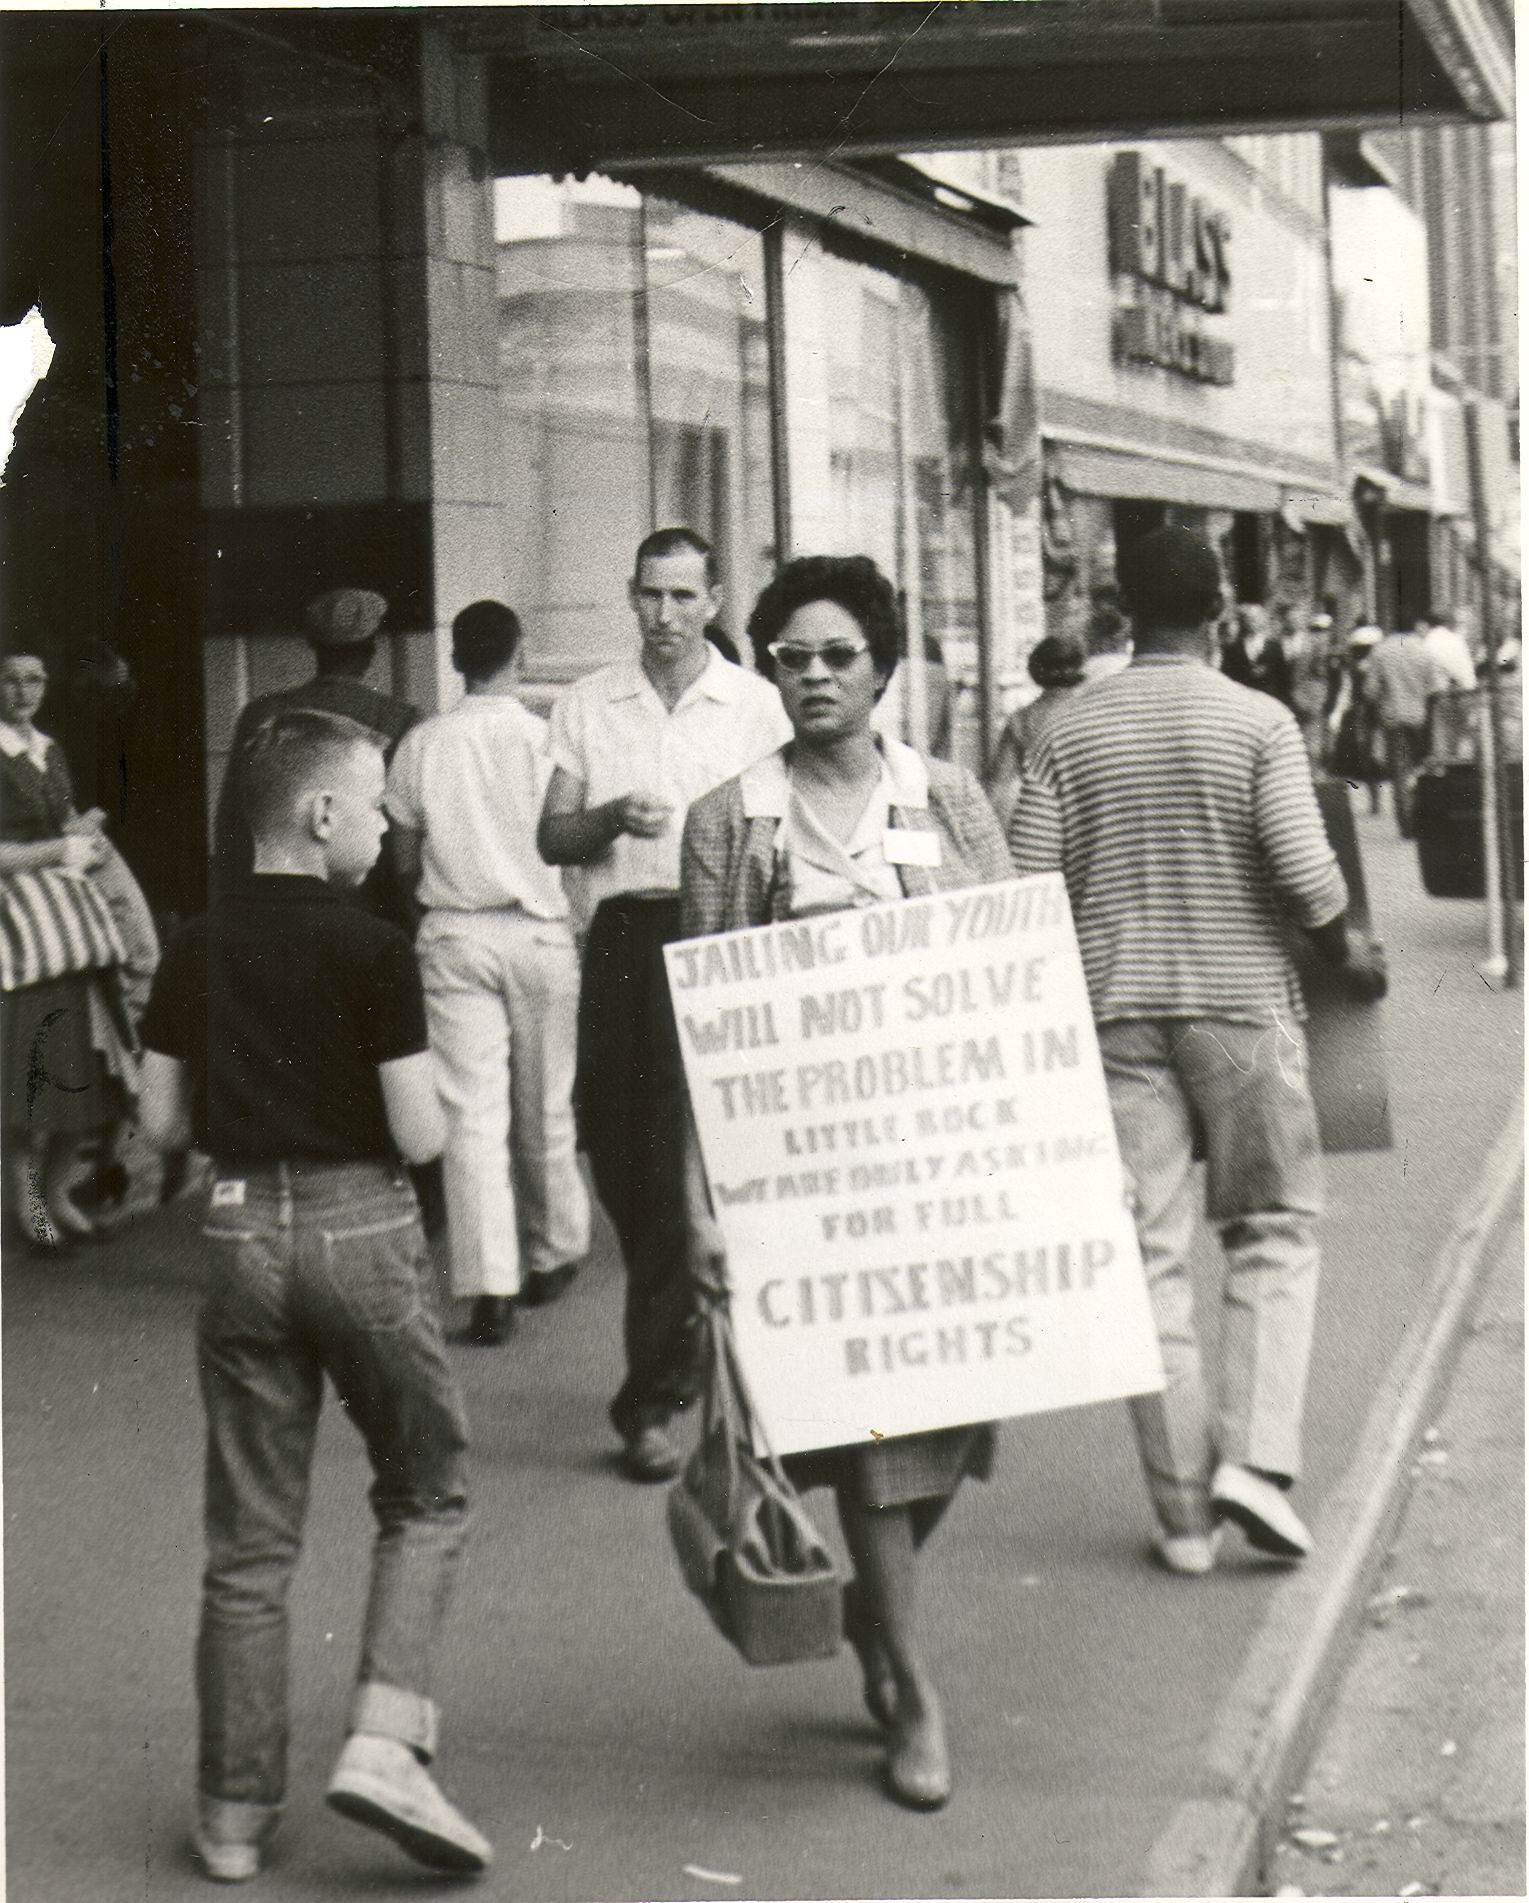 Daisy Bates protesting for integration. Asking for full citizenship rights  should not be a crime.